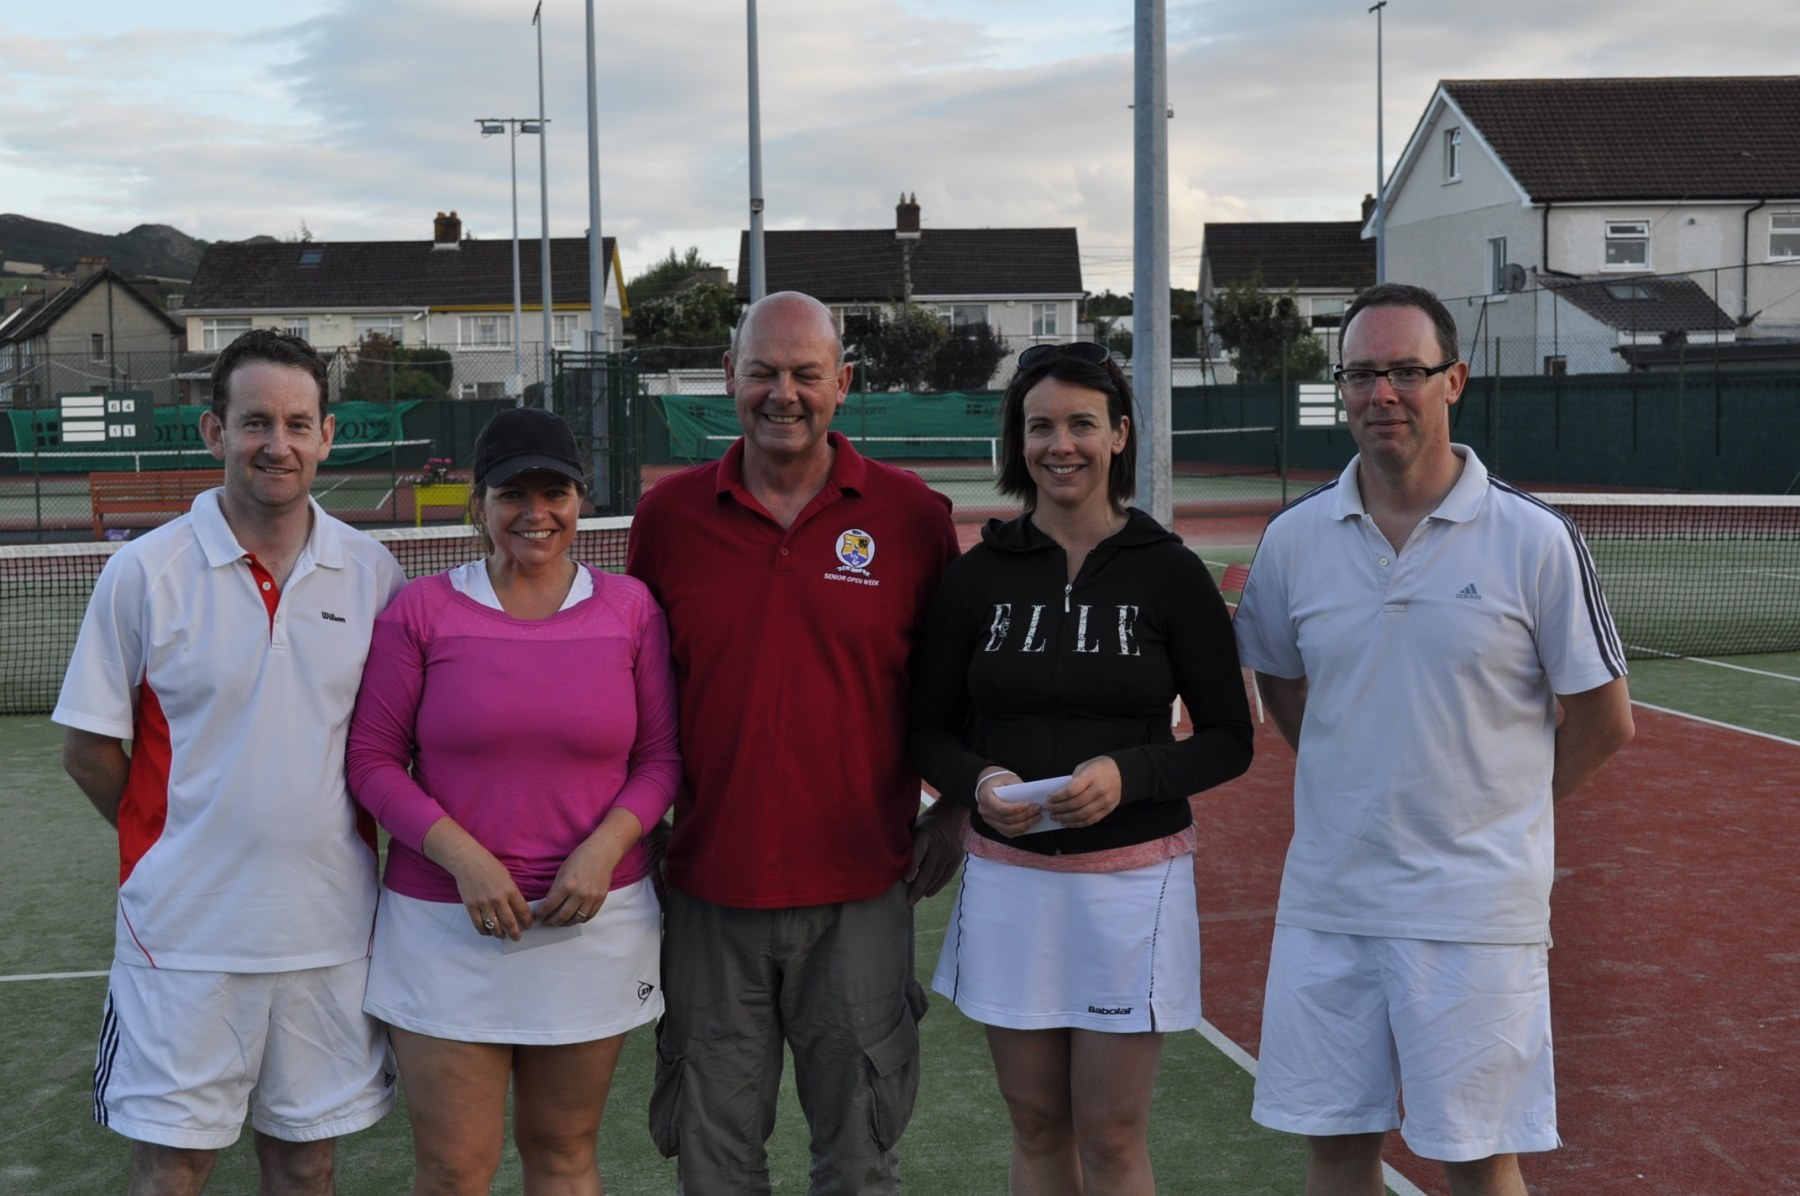 Mixed-Doubles-Class-5-6-Finalists-Stephen-Ciara-Mulvey-Susan-Lacey-Sean-Townsend